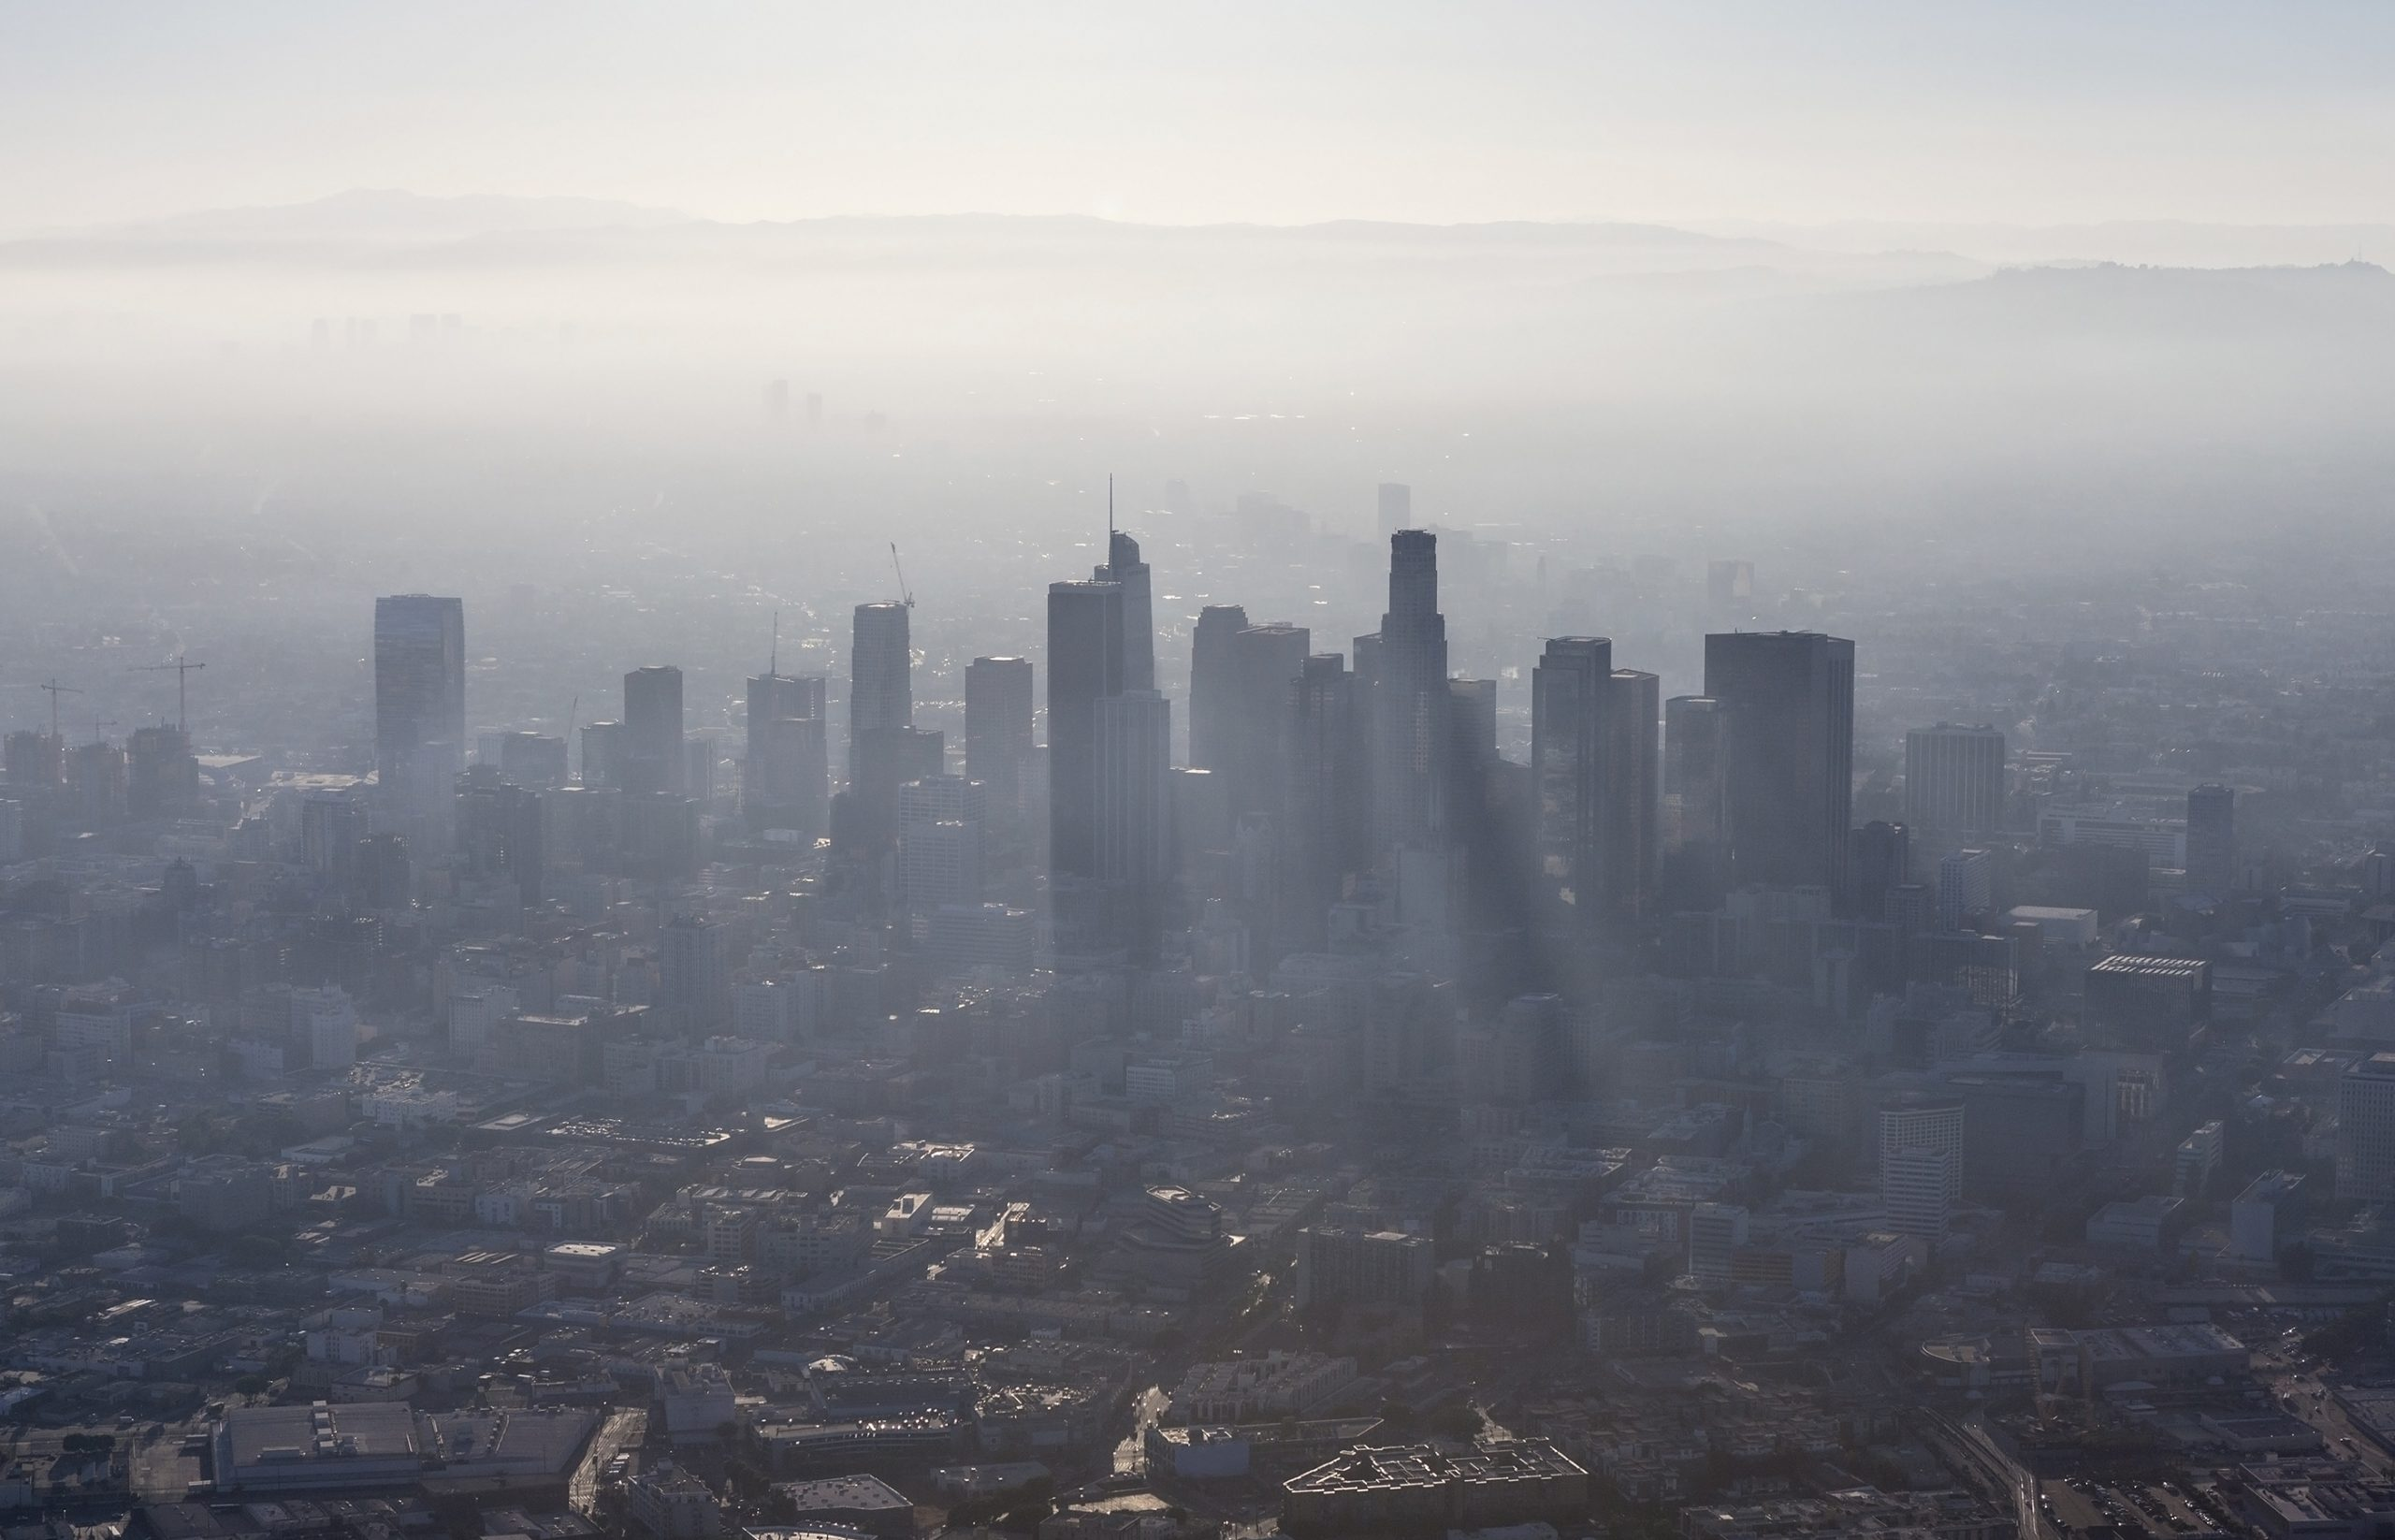 This is an image representing smog.